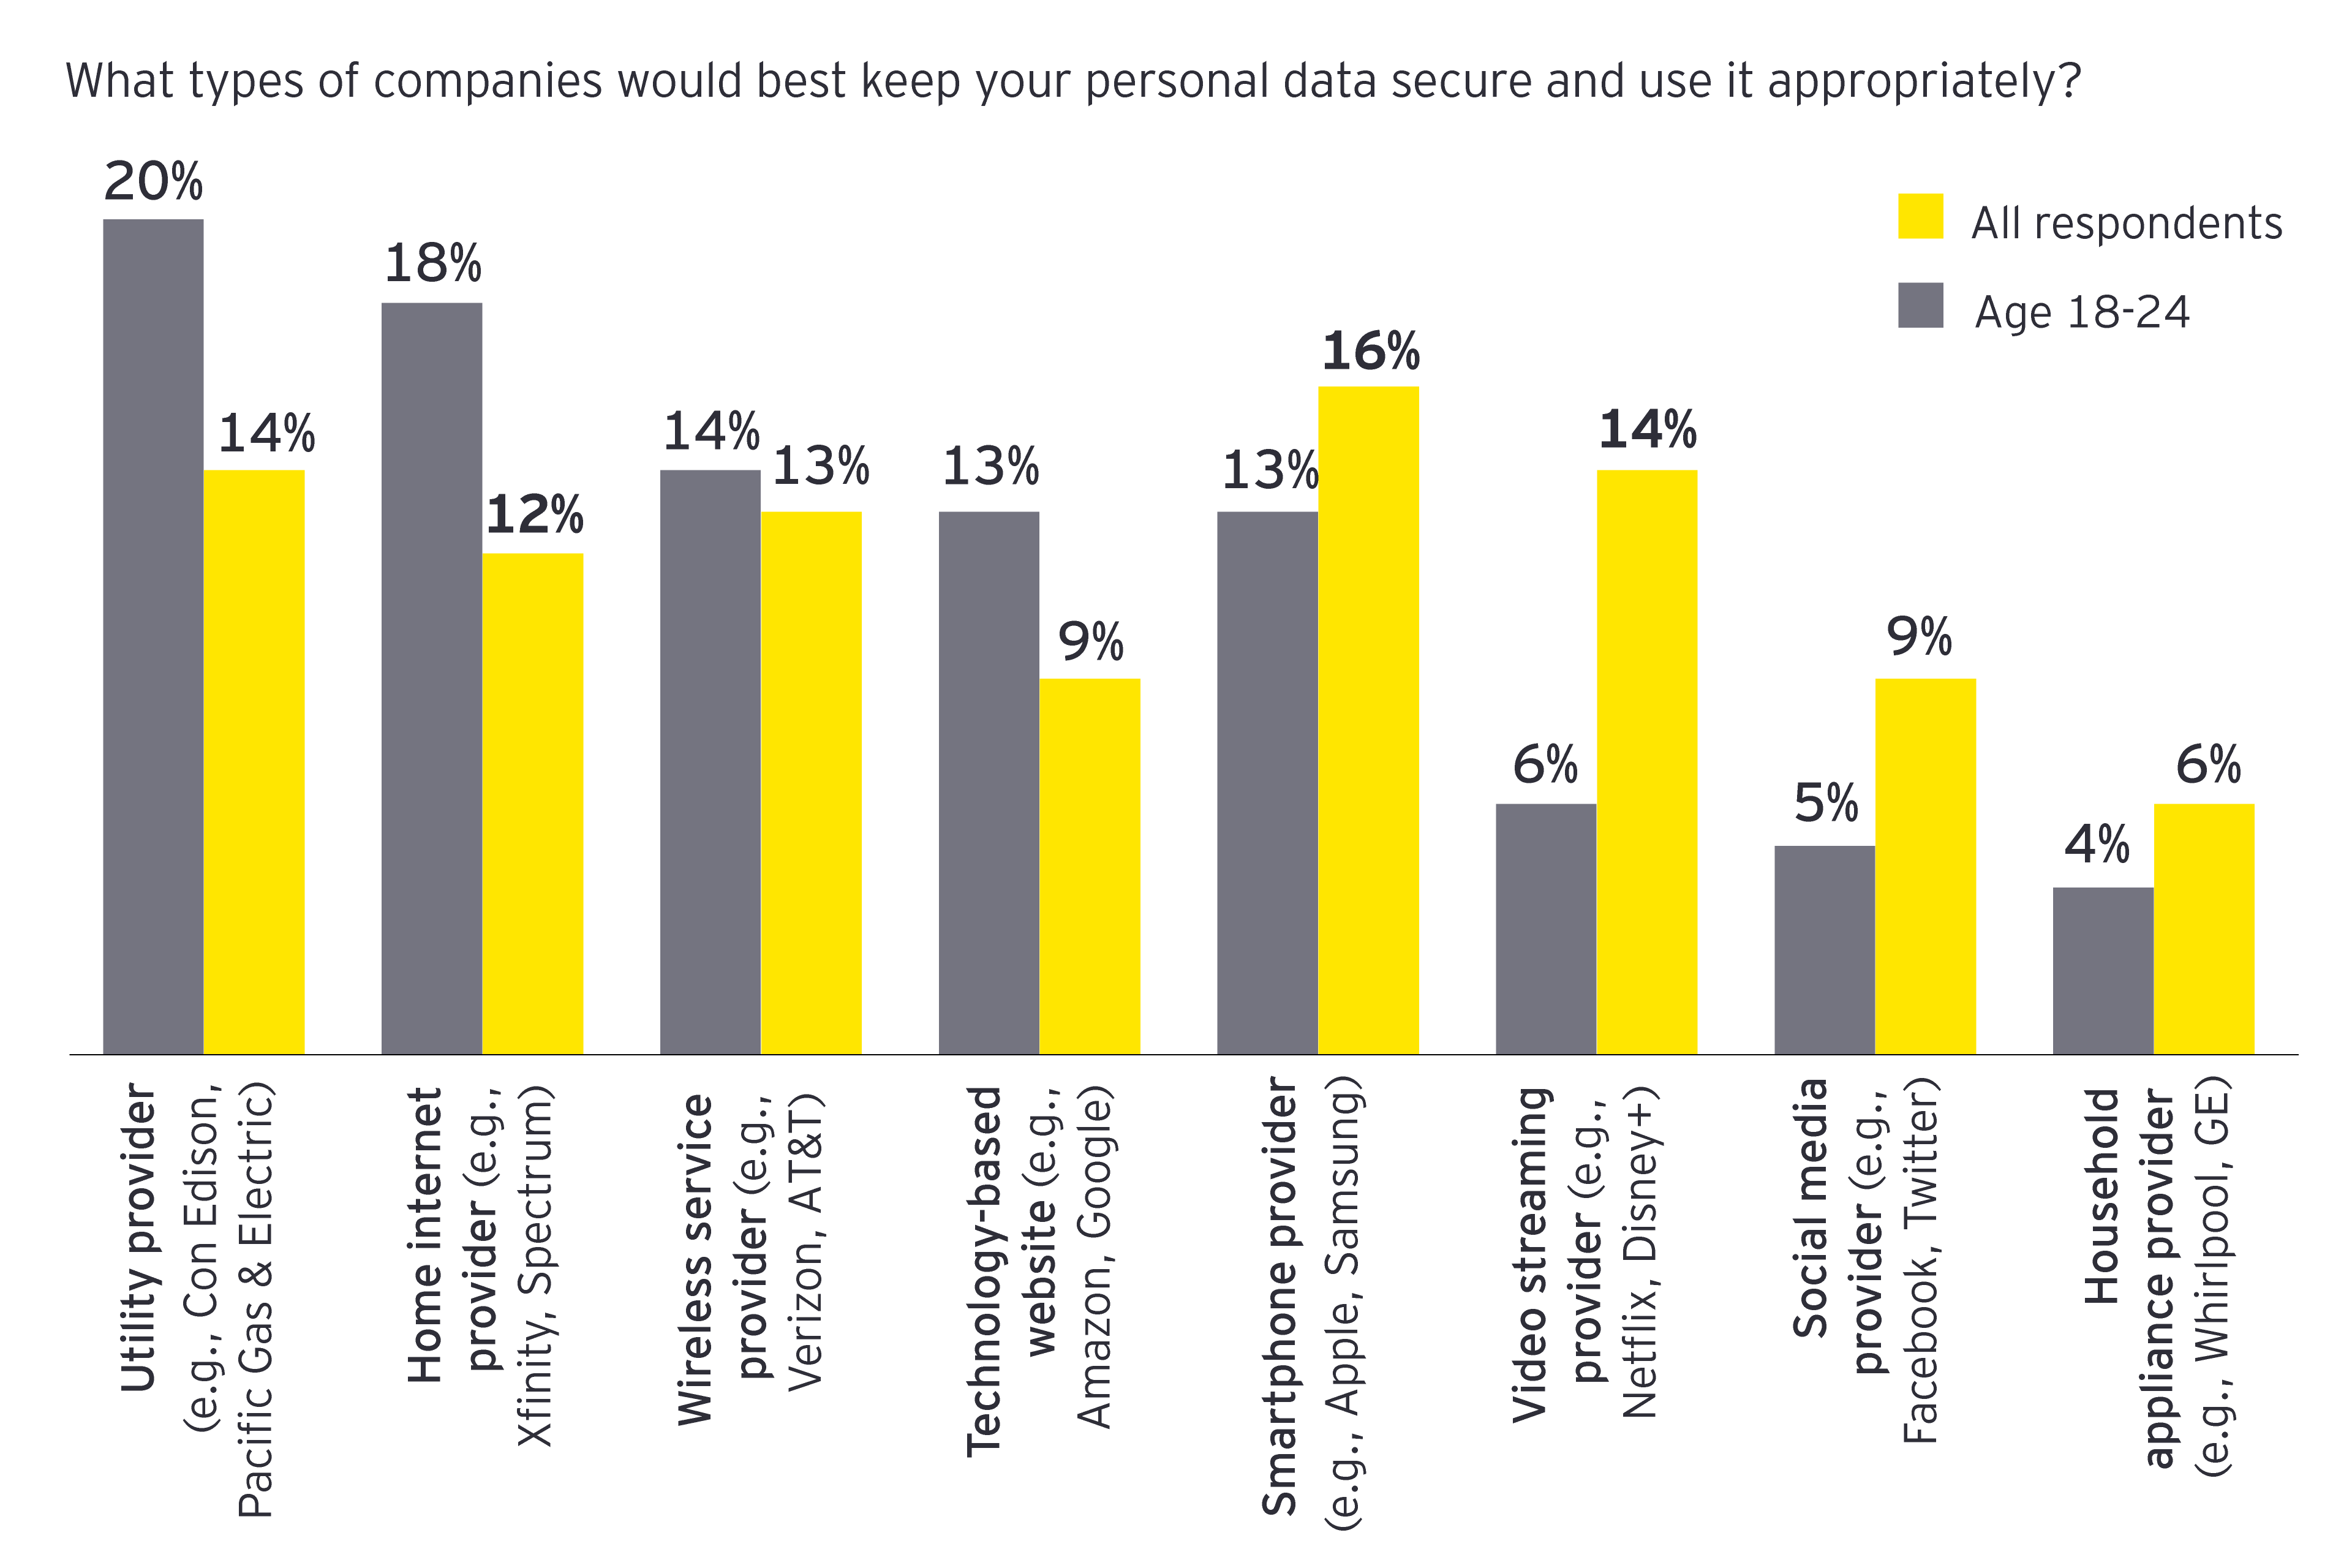 EY - Personal data secure